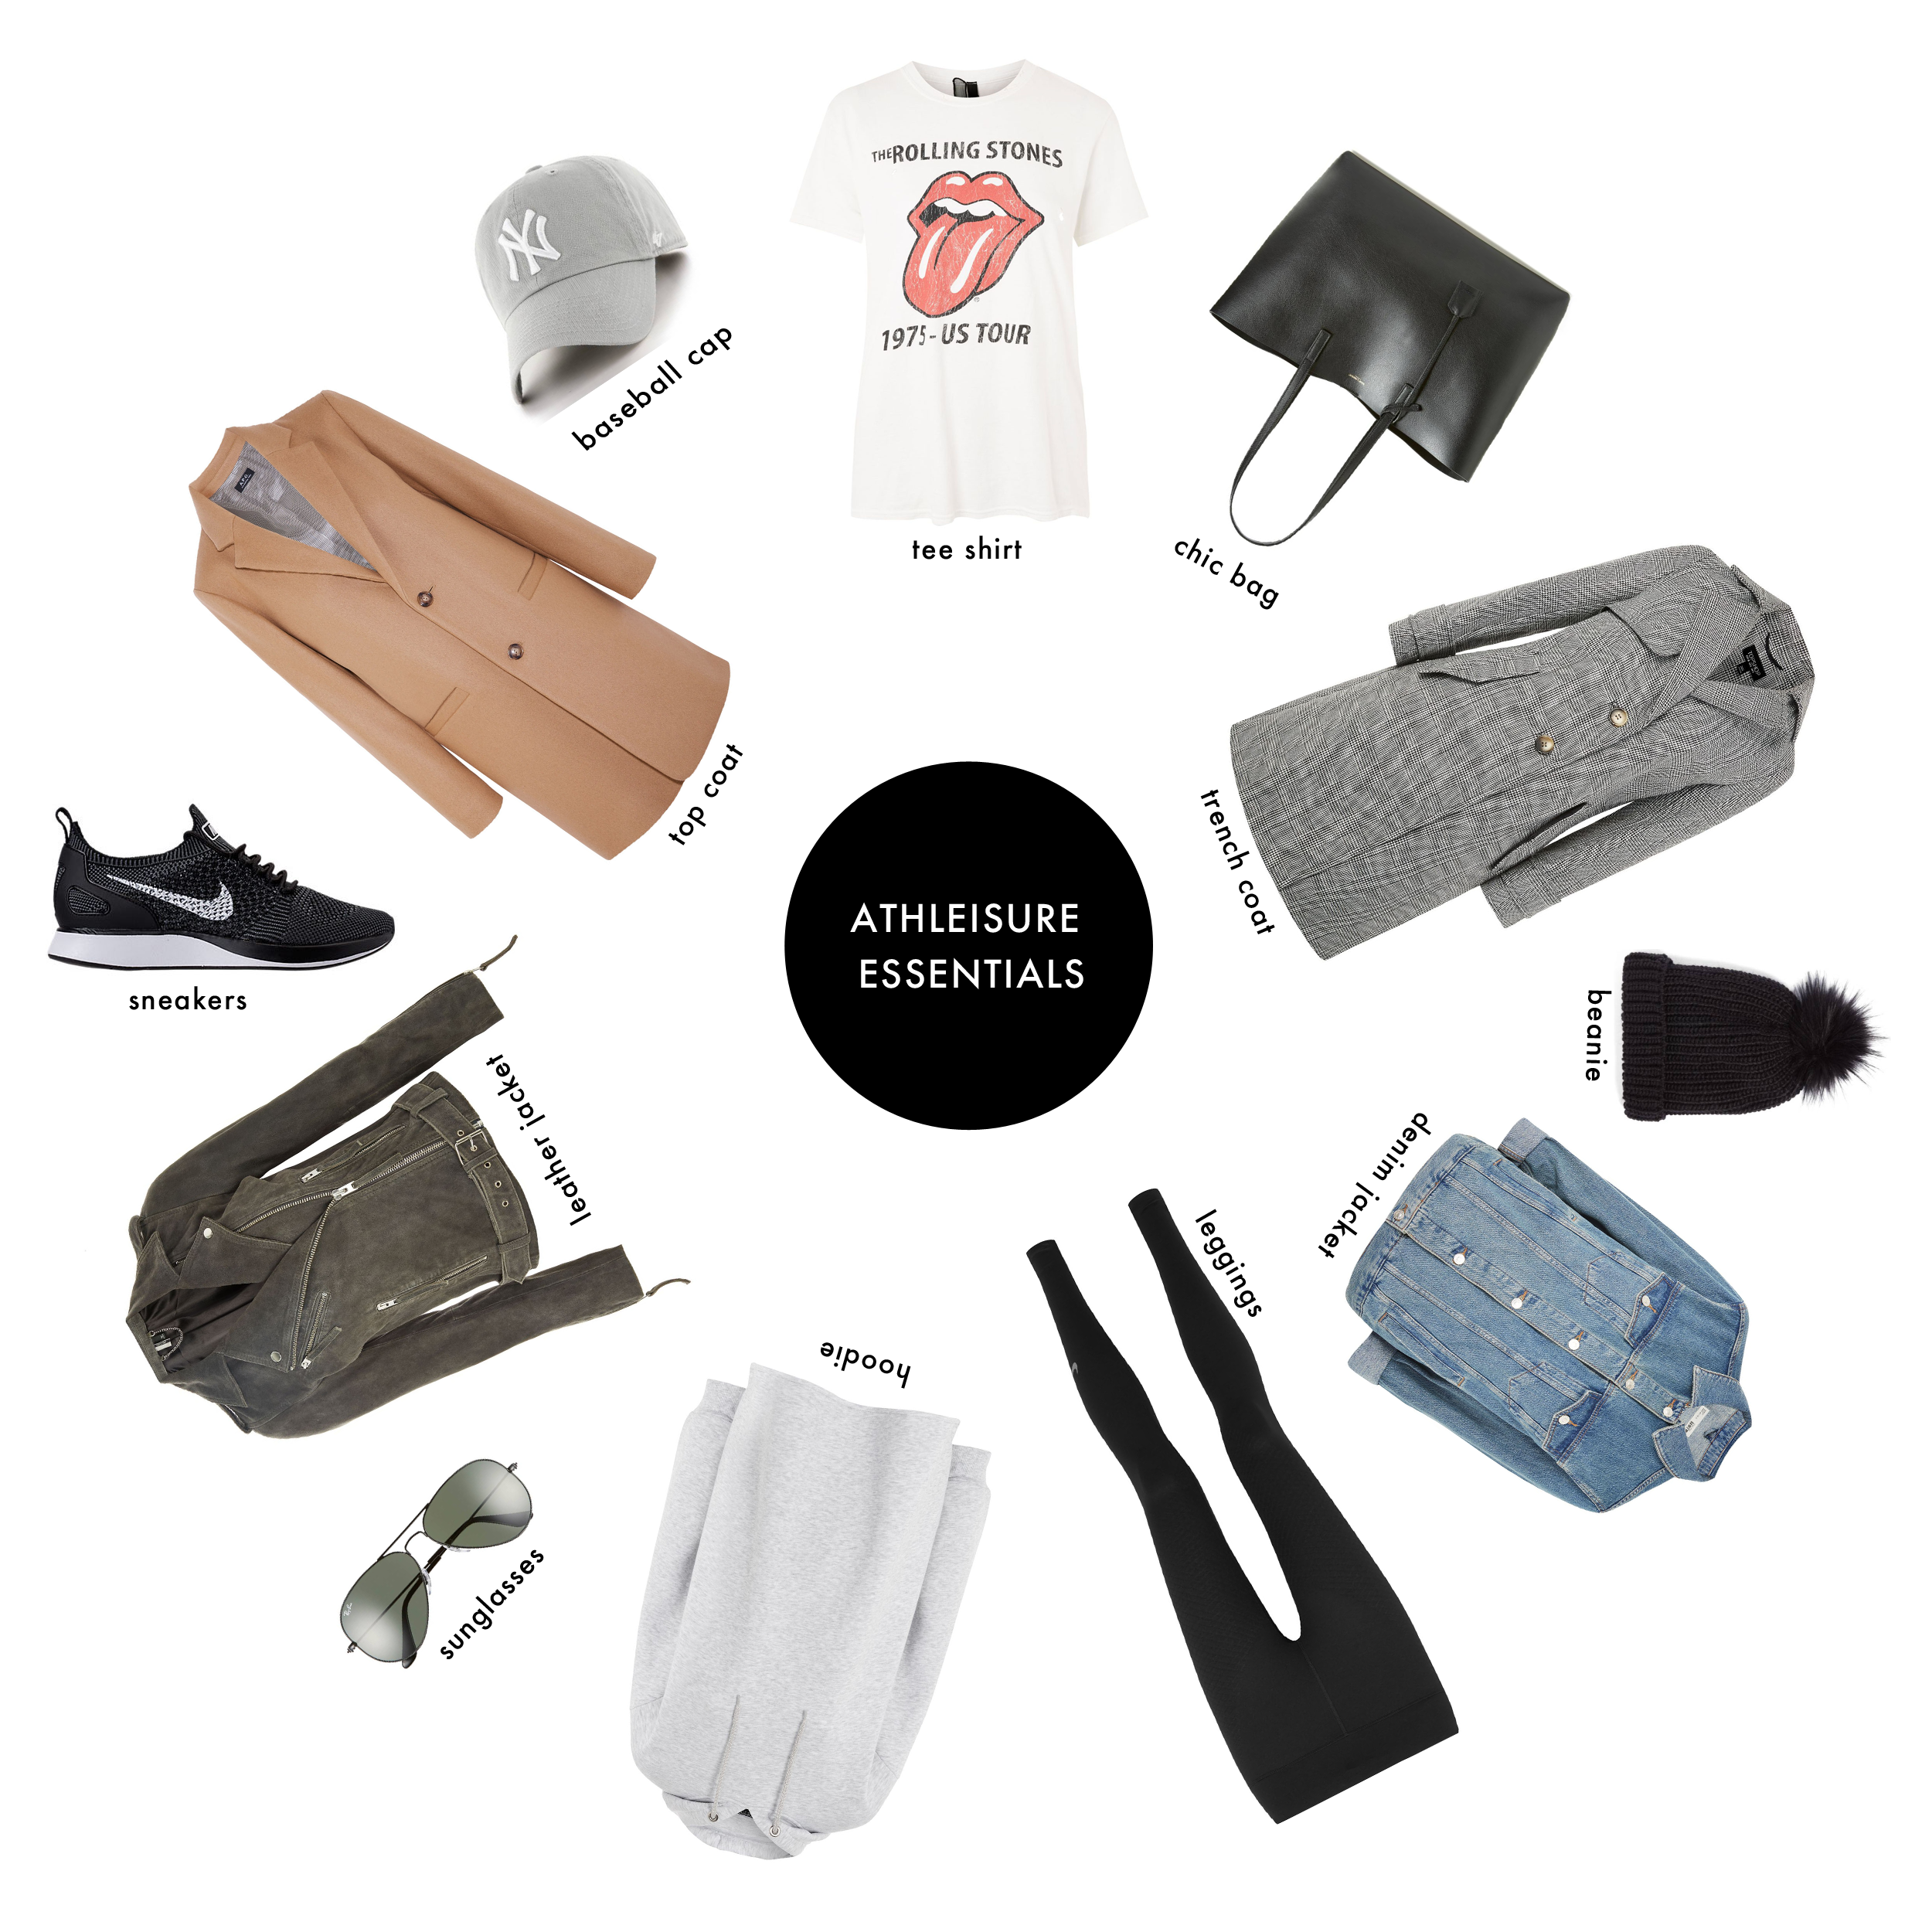 ATHLEISURE ESSENTIALS 1